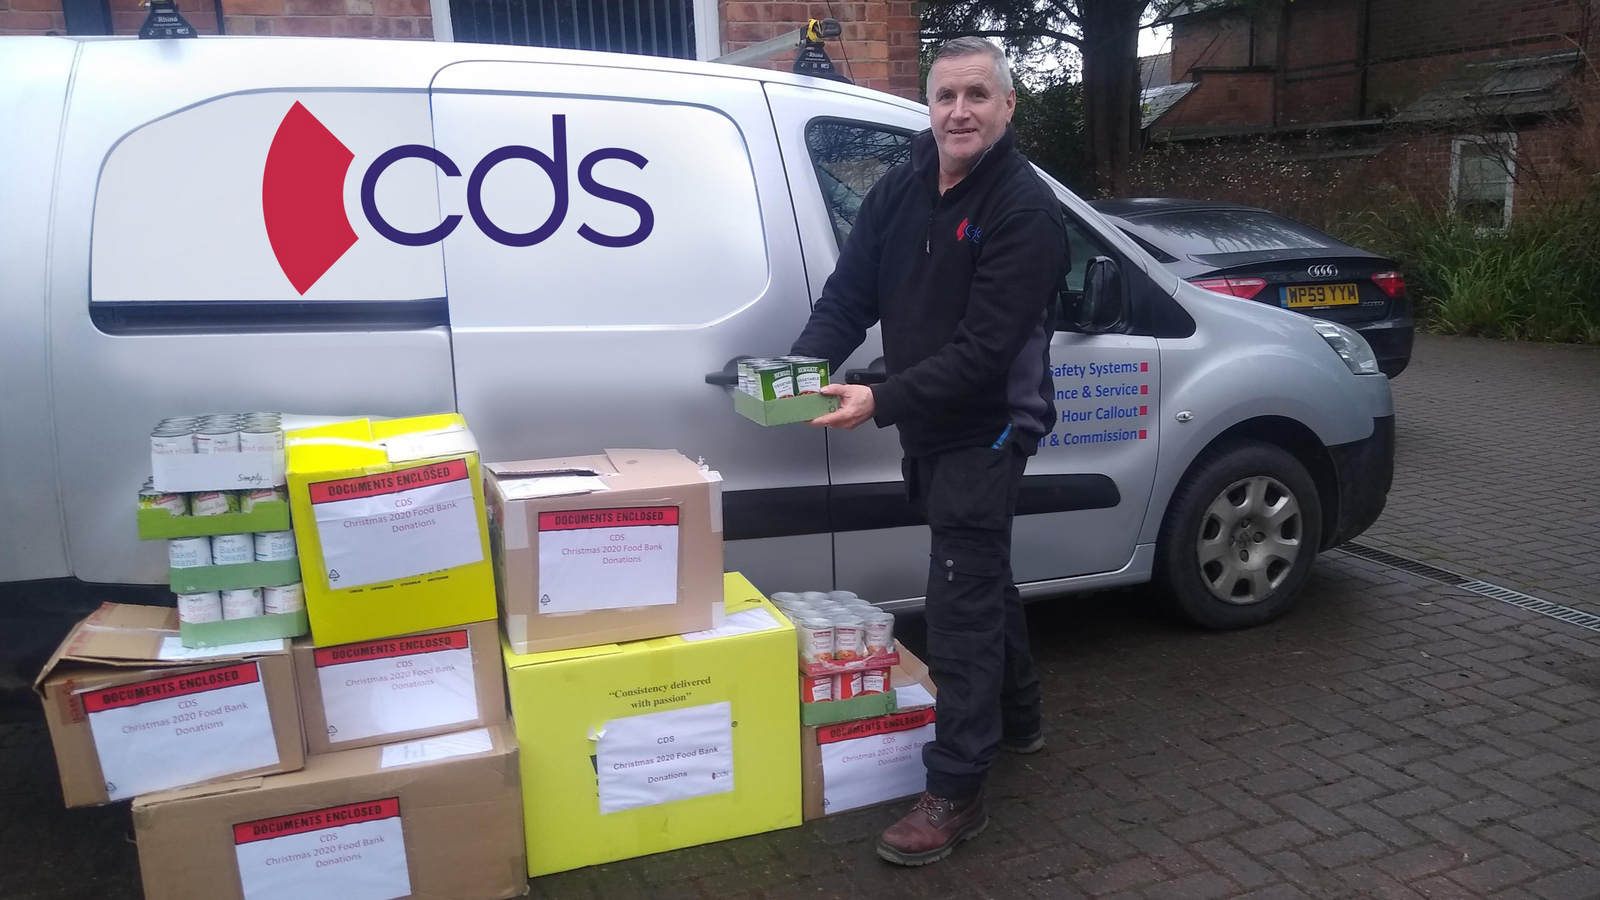 CDS helps families in need with Christmas food bank donation